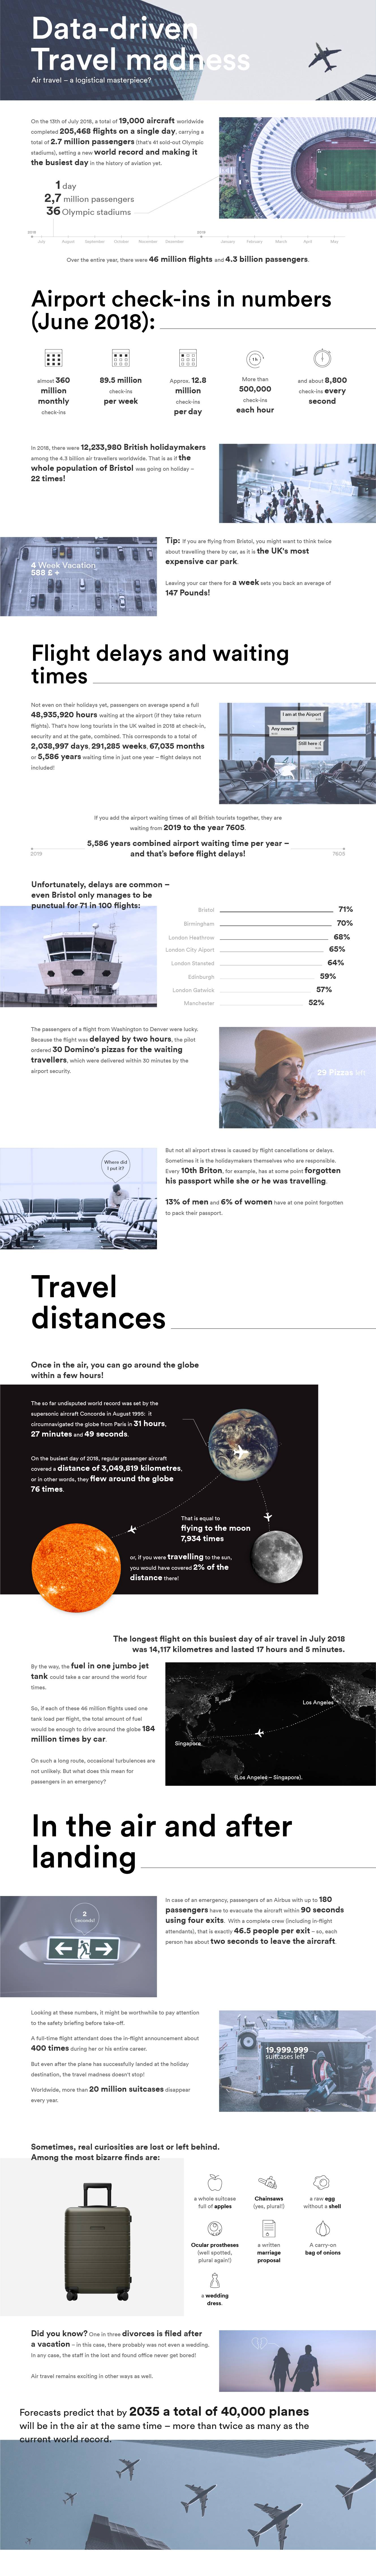 Infographic uses current travel data to visualise what is going on at airports and in tourism in the space of one year.